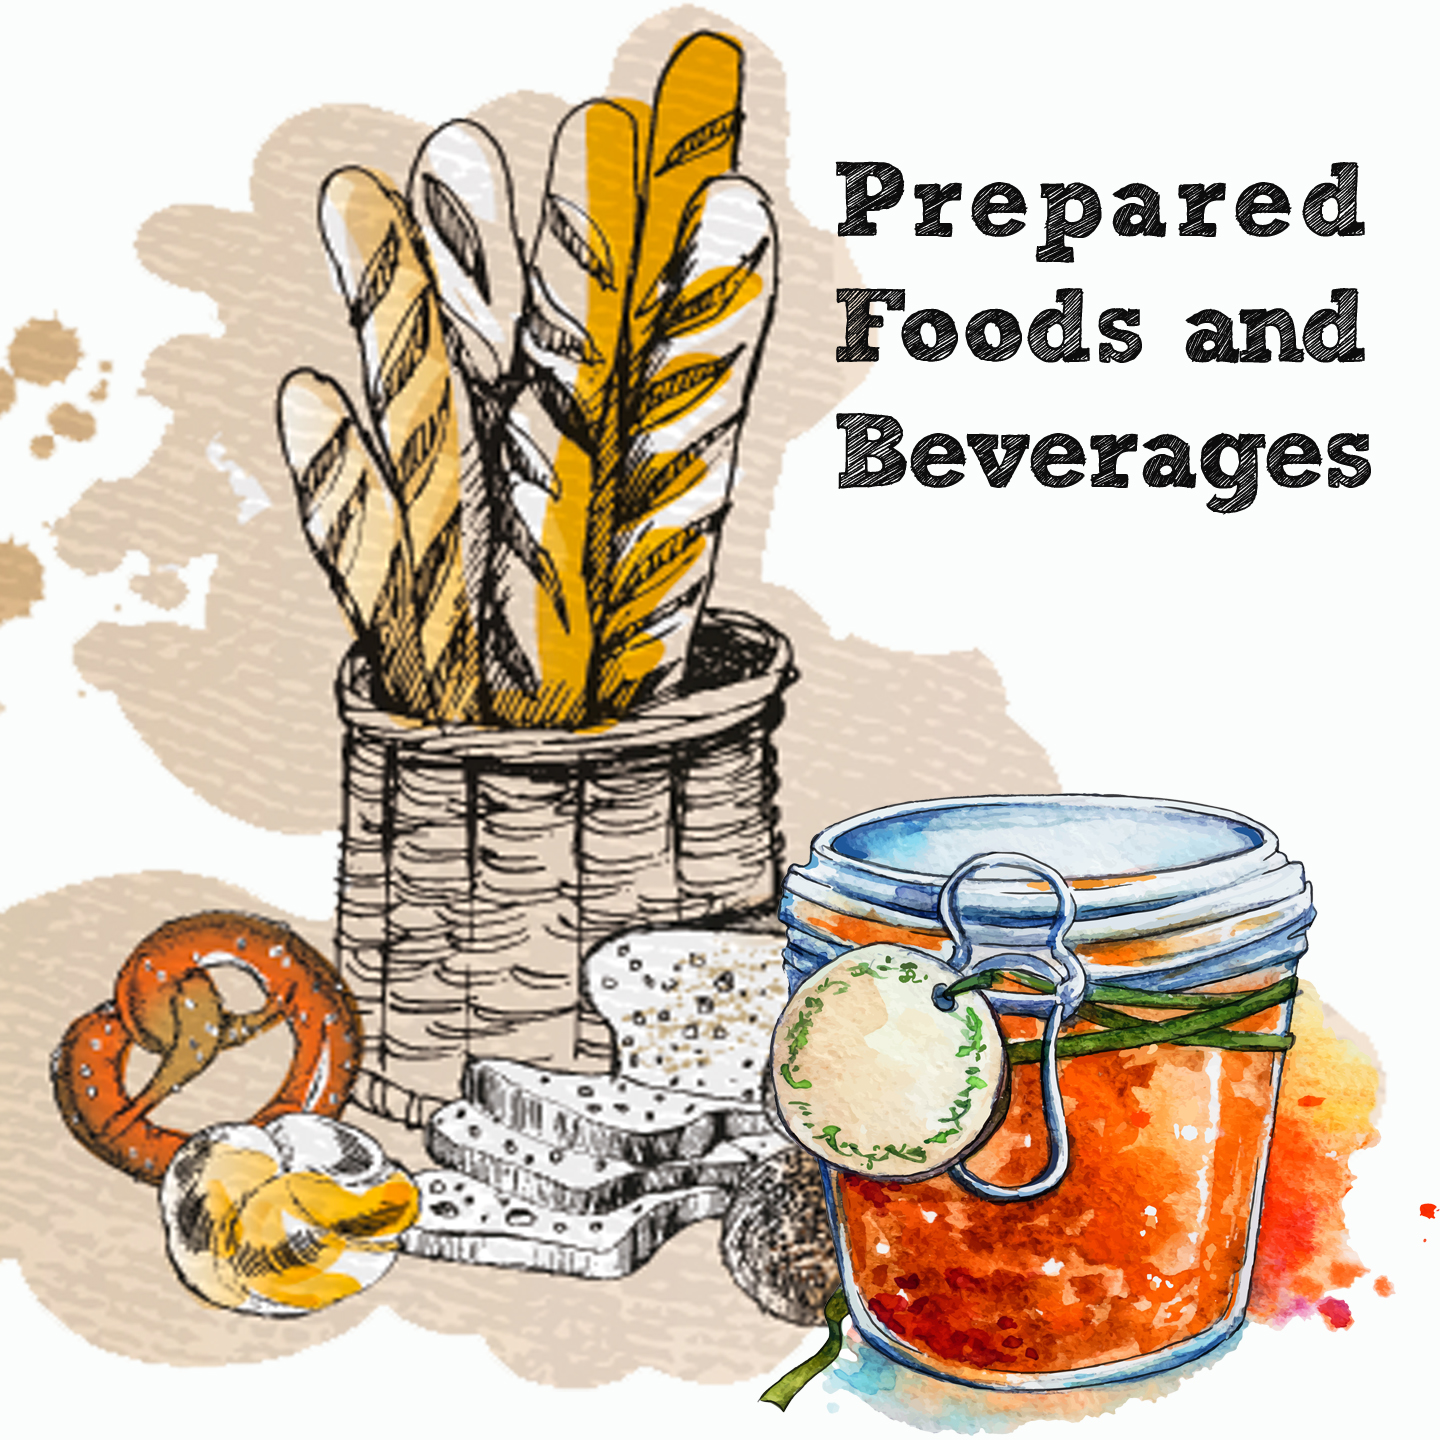 Processed Food: Apply Here - You pre-make baked goods, jams, spreads, fermented or preserved foods and drinks that are sold packaged.